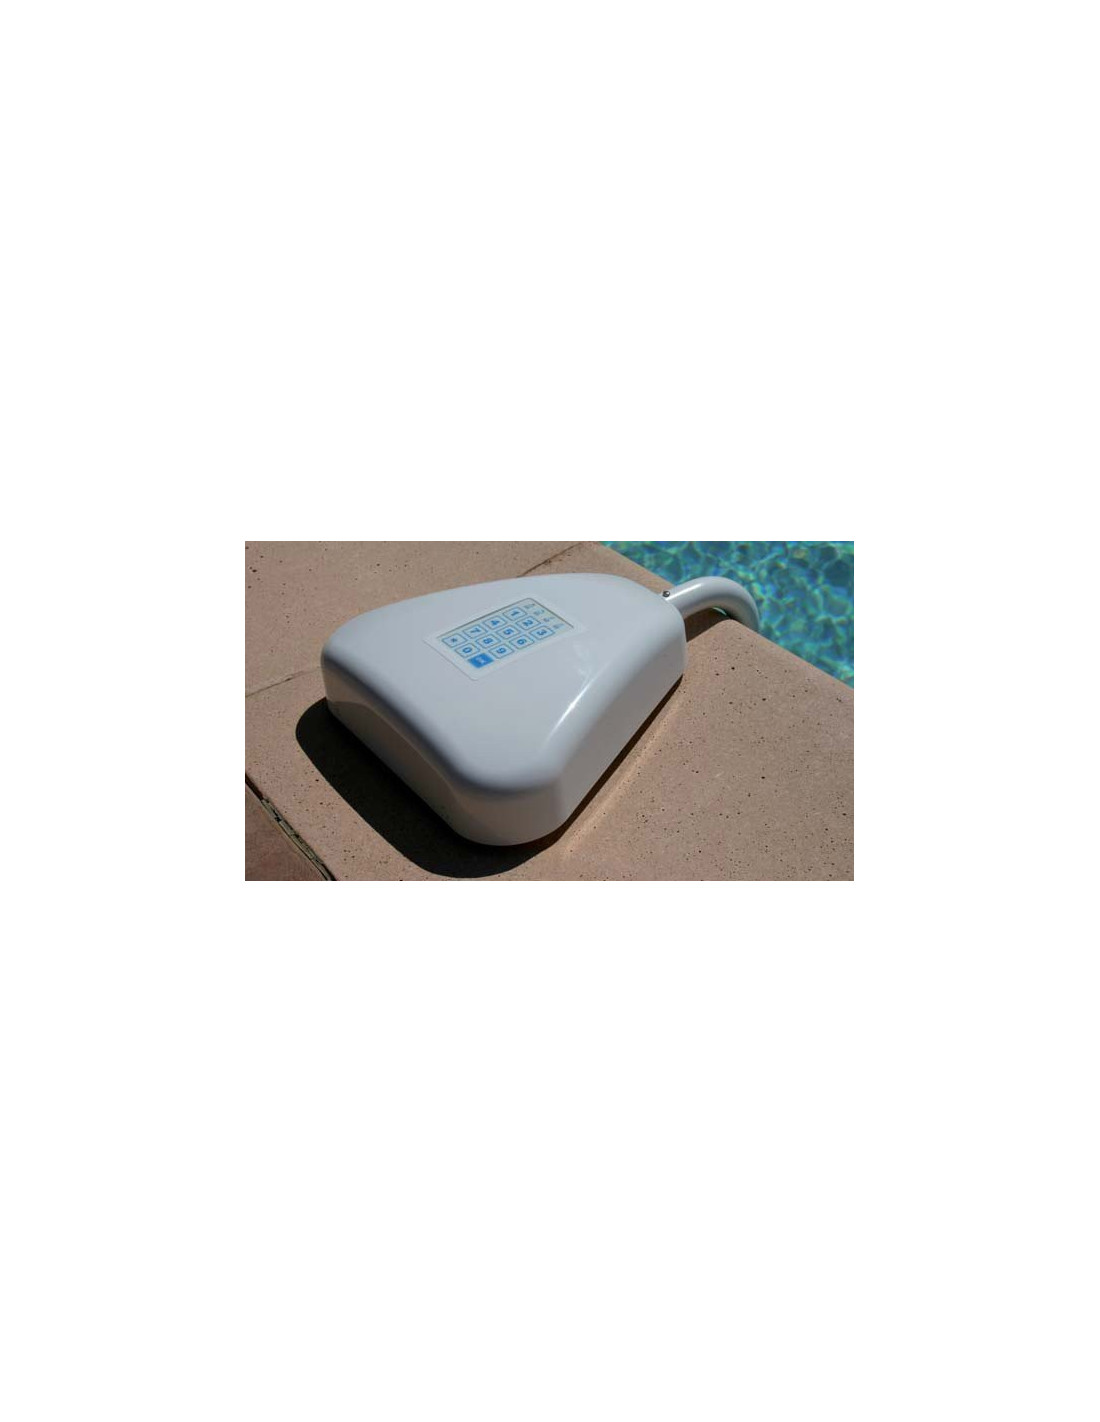 Alarme de piscine aqualarm for Alarme piscine